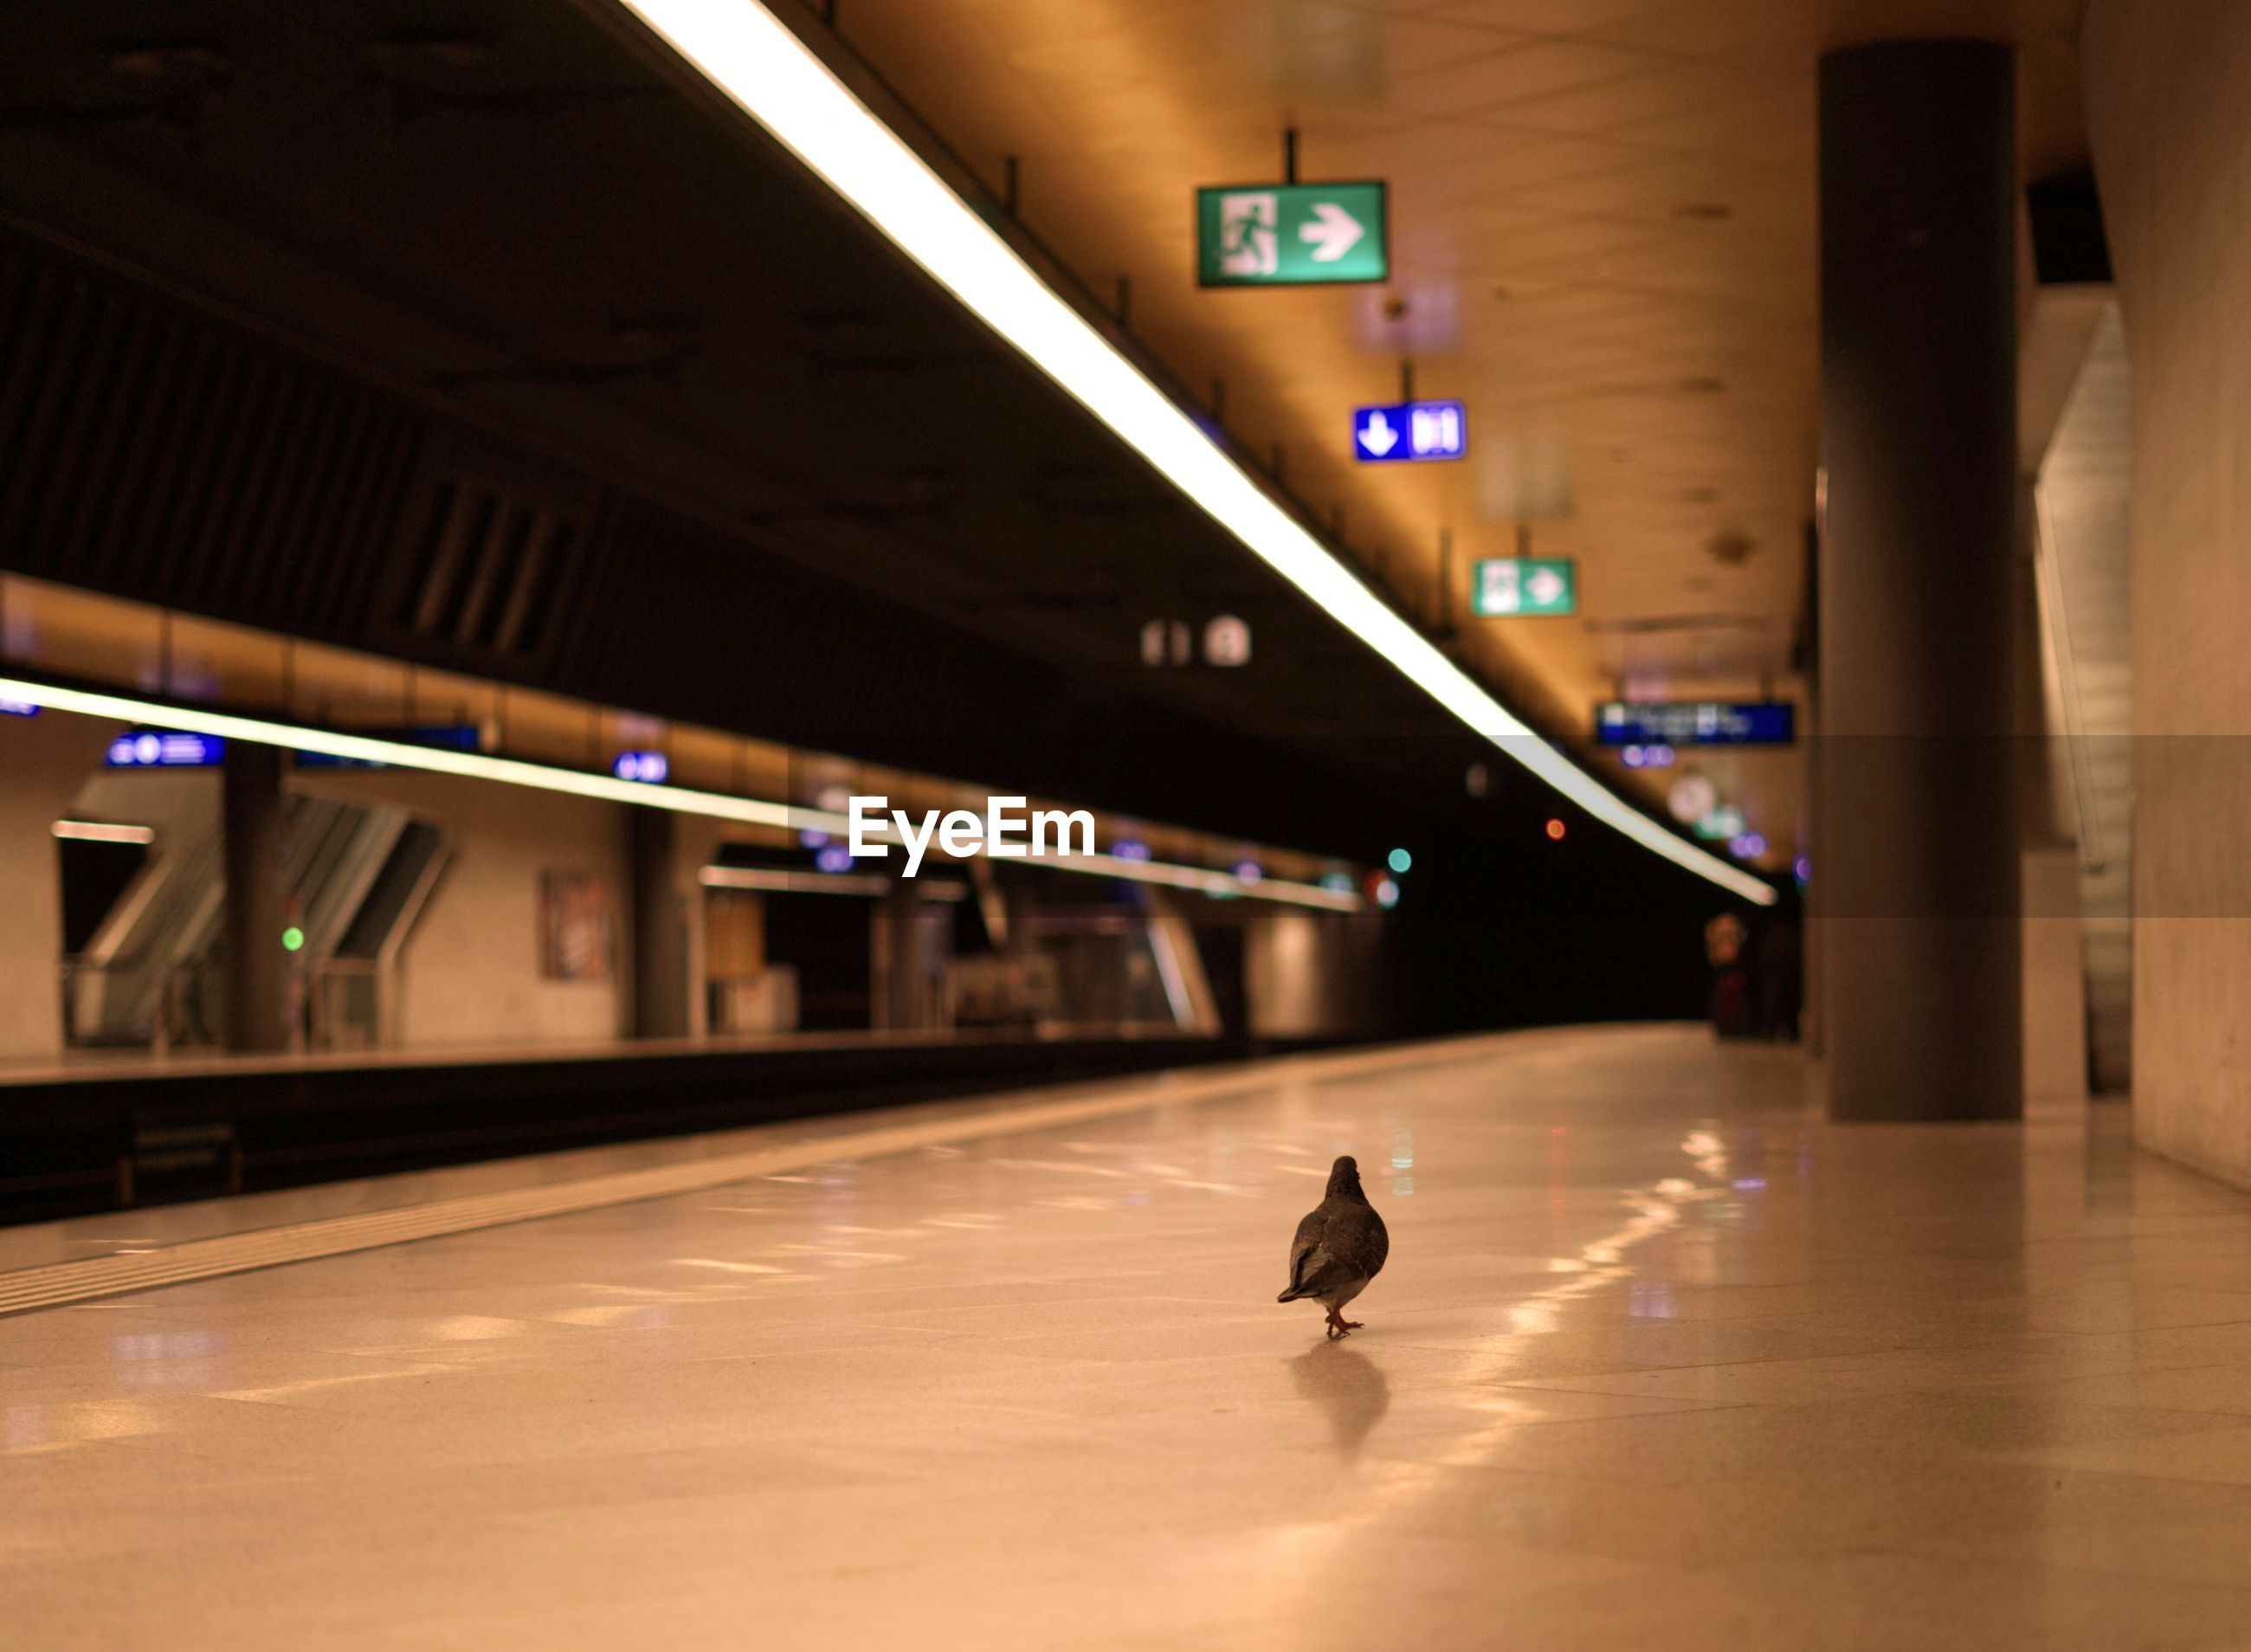 Pigeon in a empty railroadstation during corona crisis